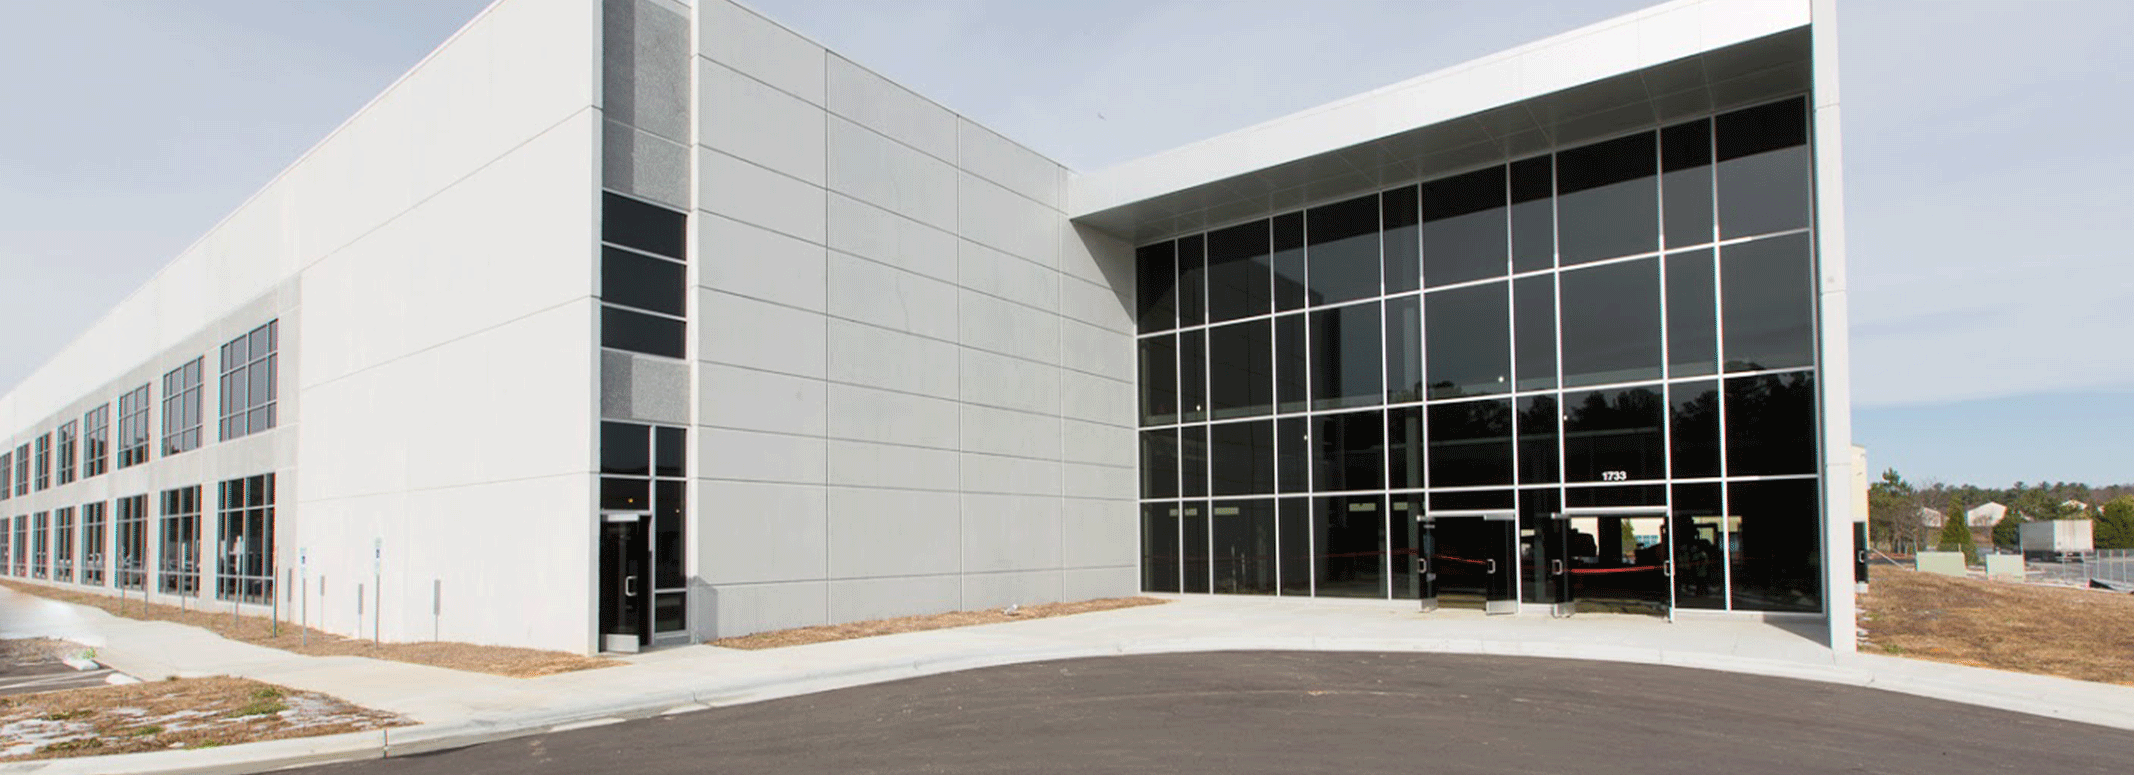 35 North Provides Construction Management Services to Argos Therapeutics' Bio-Manufacturing Facility in Durham, NC